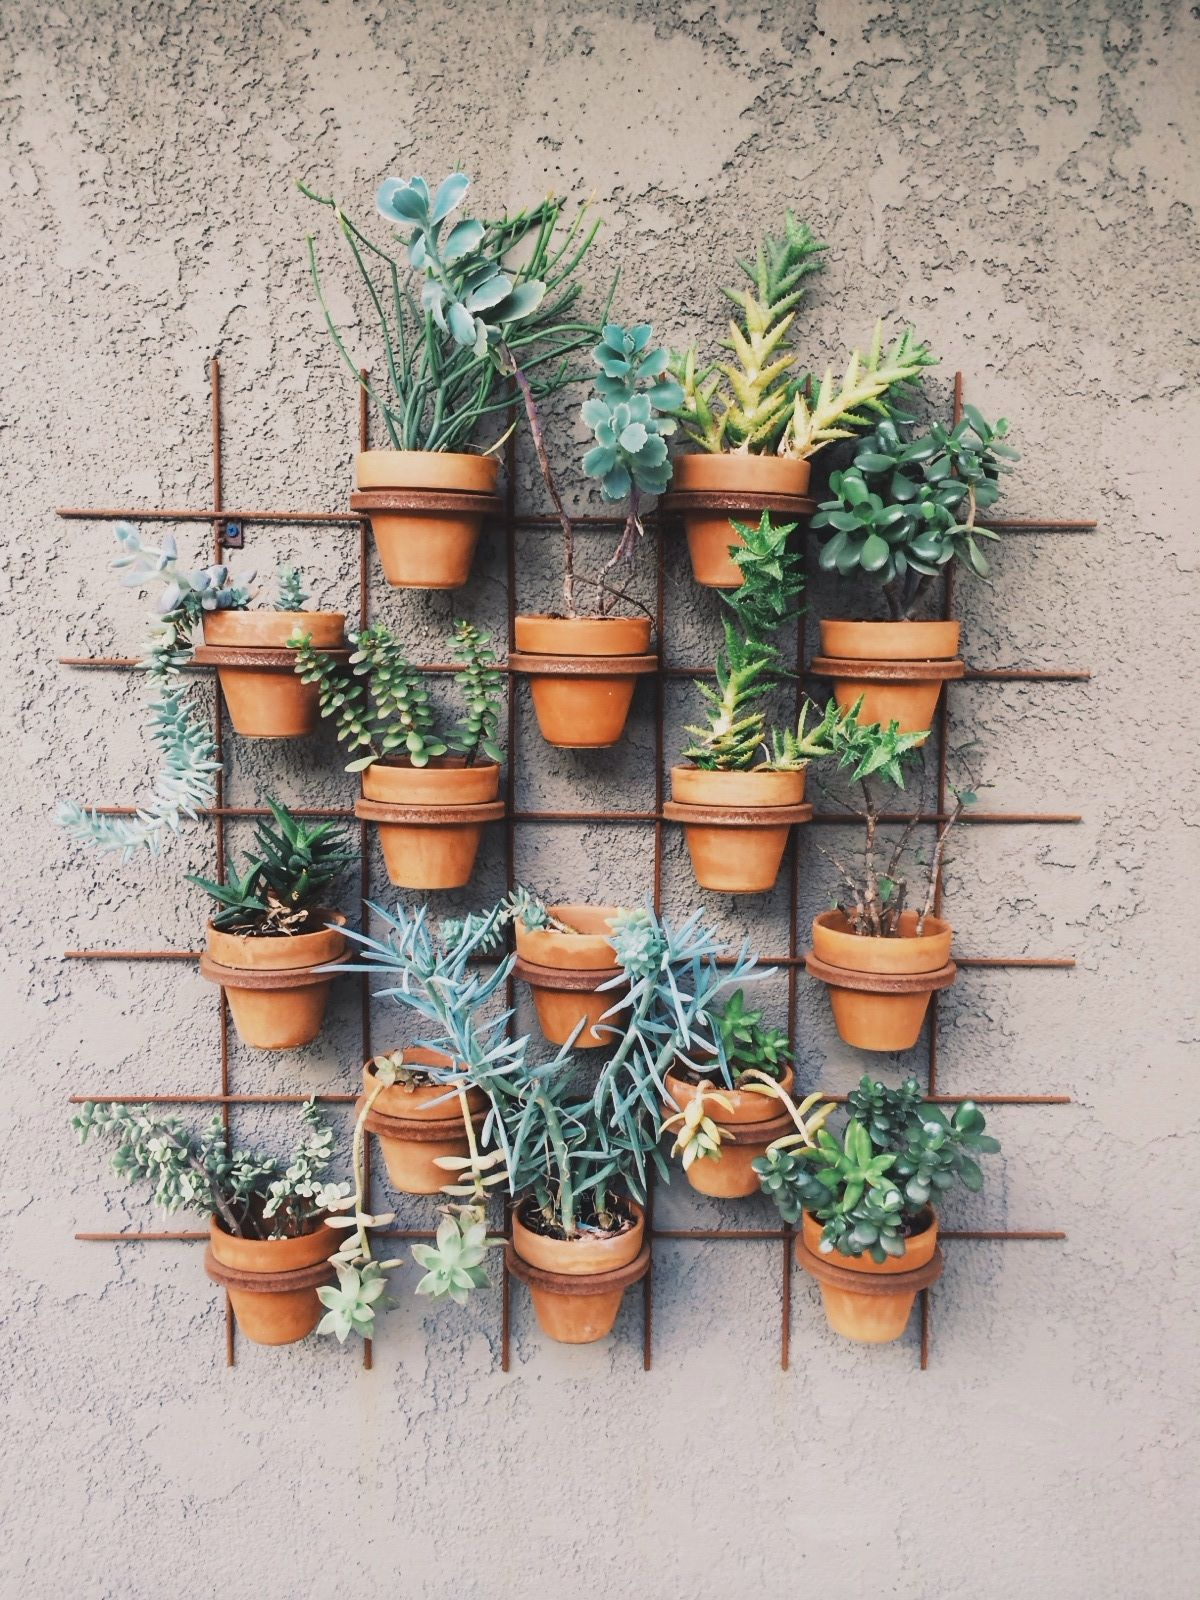 The 50 Best Vertical Garden Ideas And Designs For 2017